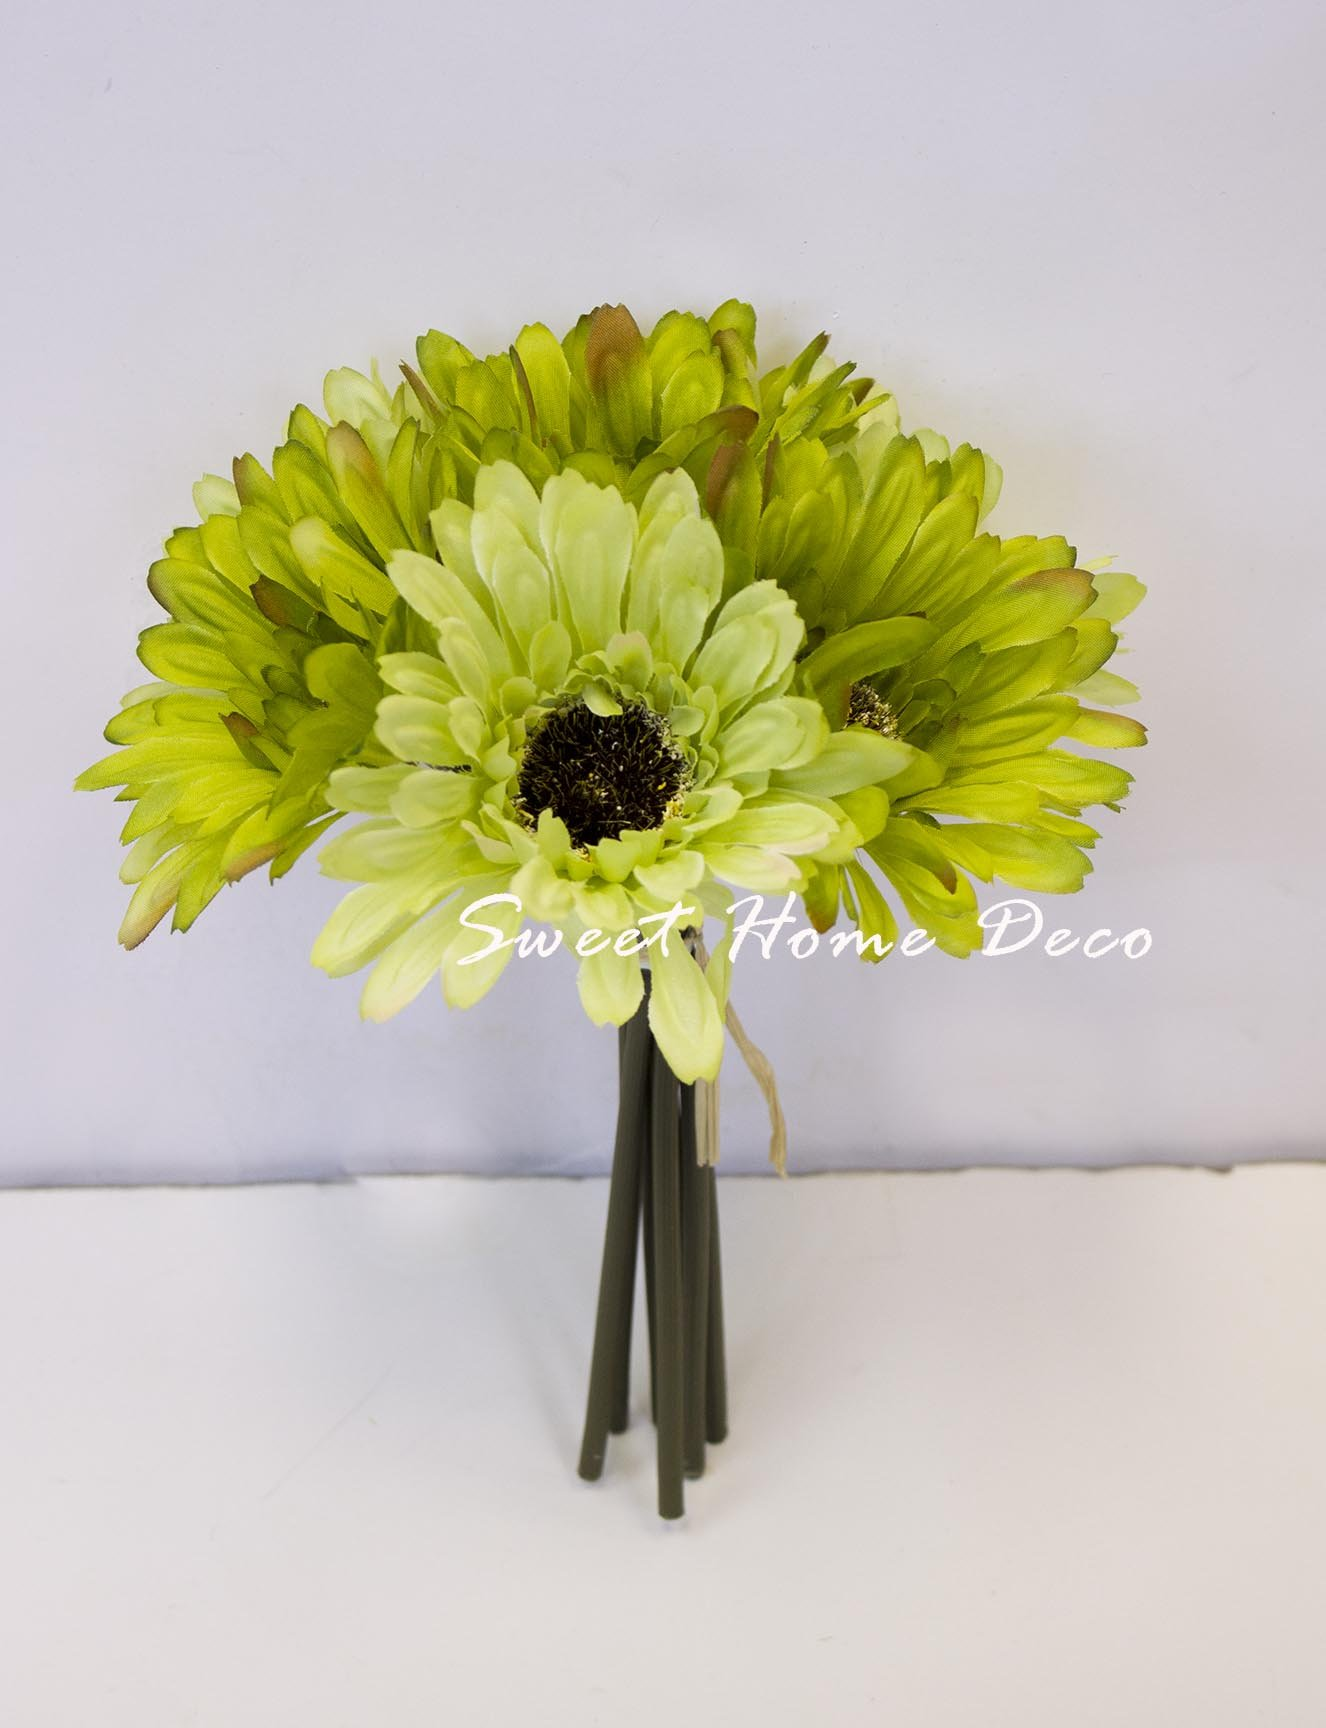 Buy floristrywarehouse artificial silk flower lime green rose amp sweet home deco 8 silk artificial gerbera daisy flower bunch w 7stems 7 flower heads homewedding new colors lime green mightylinksfo